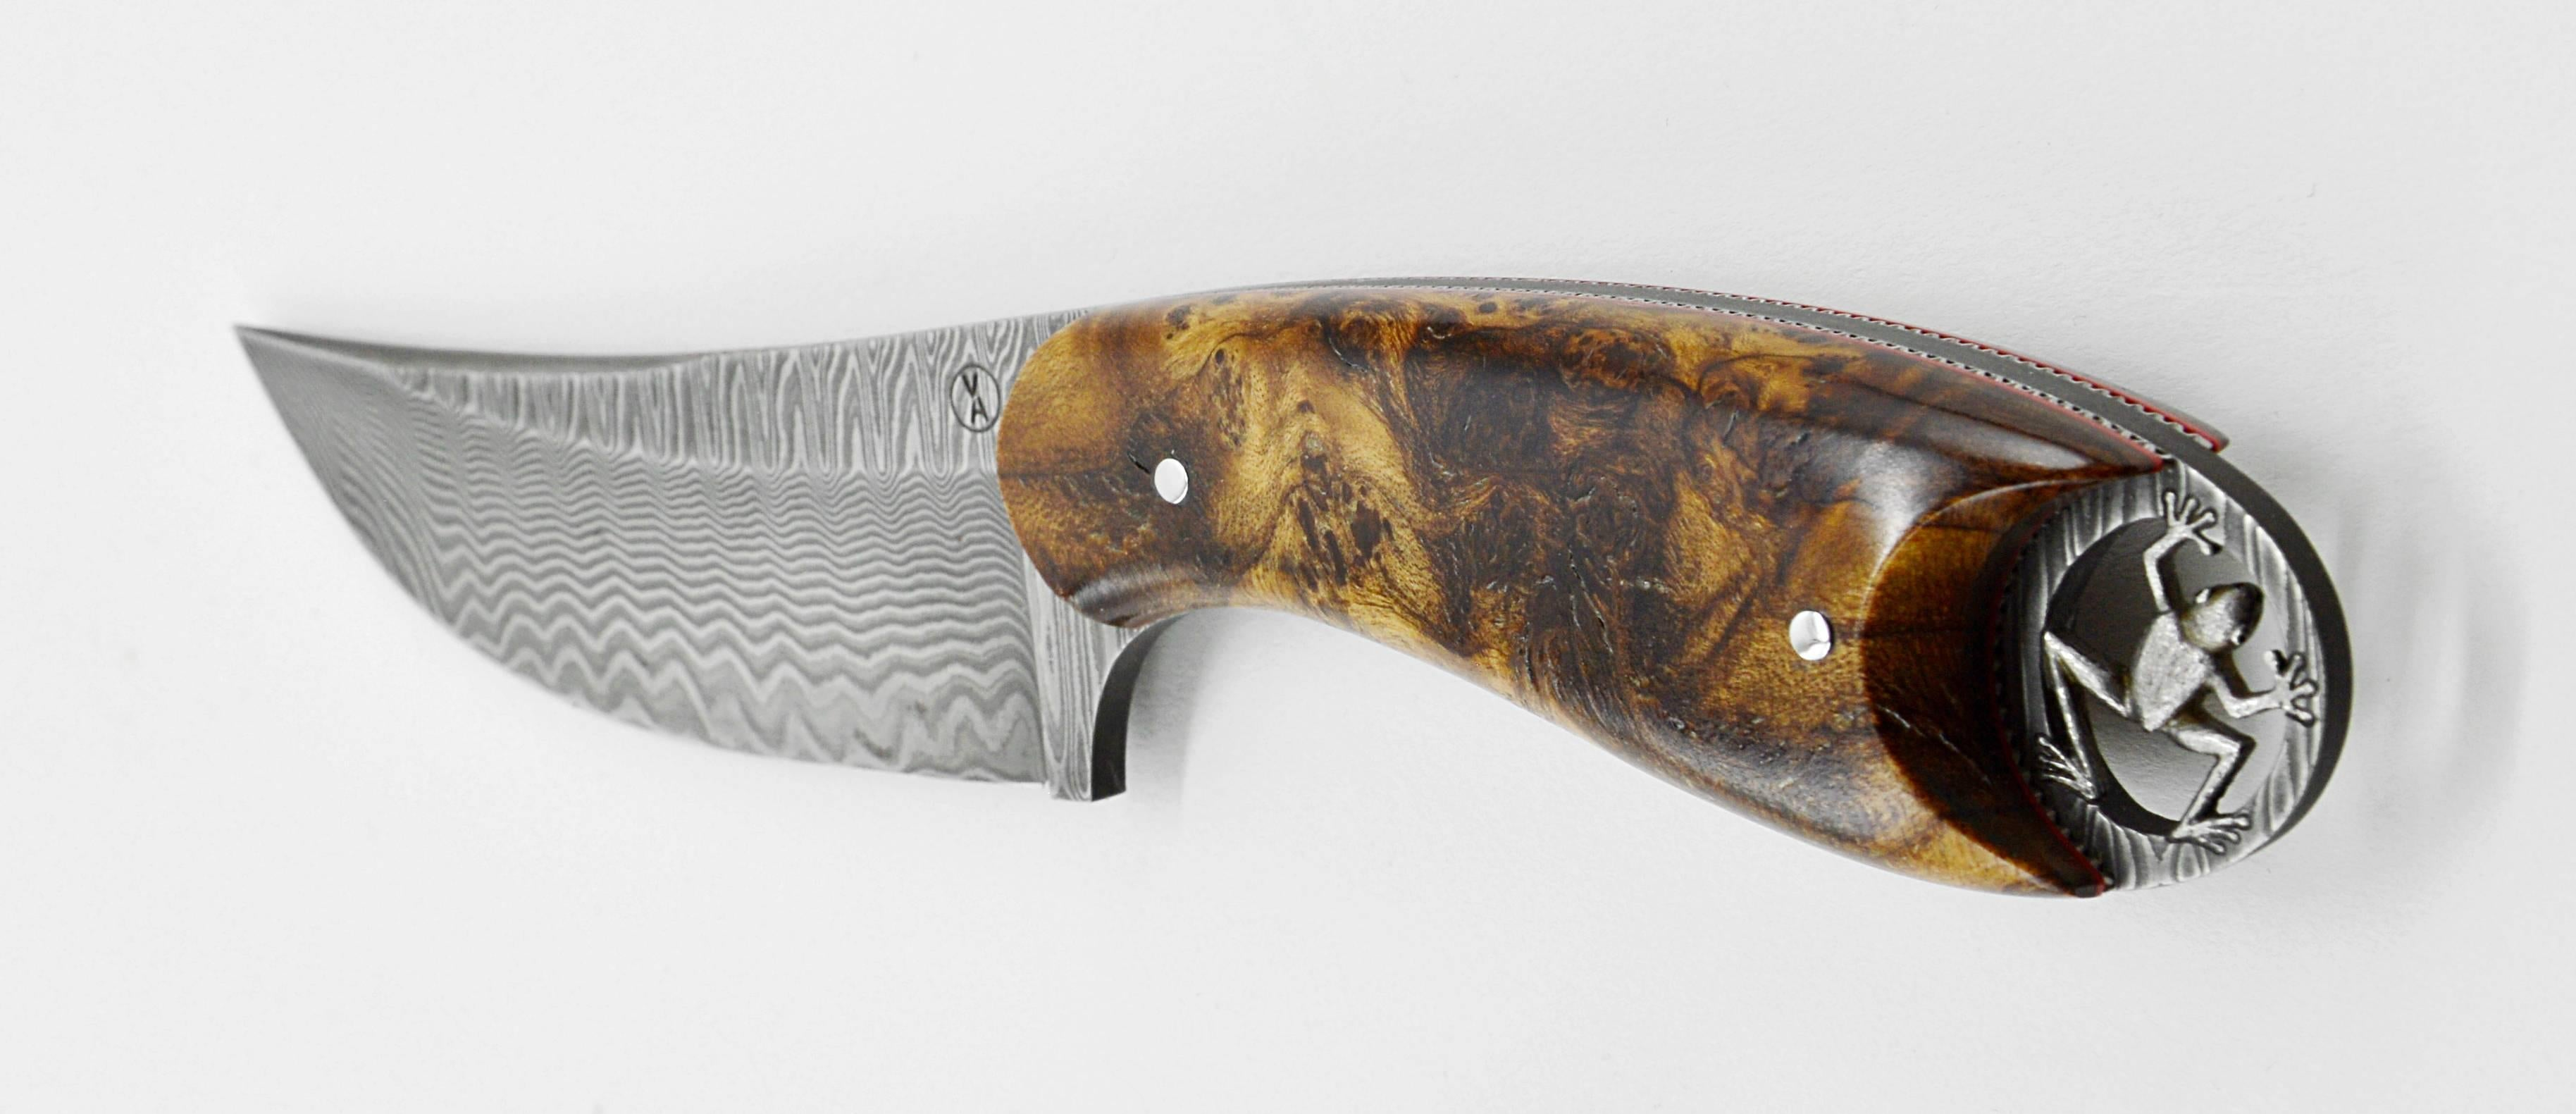 forge lucas customers tang full about ron pictures knives jaguar the custom w hunting collection